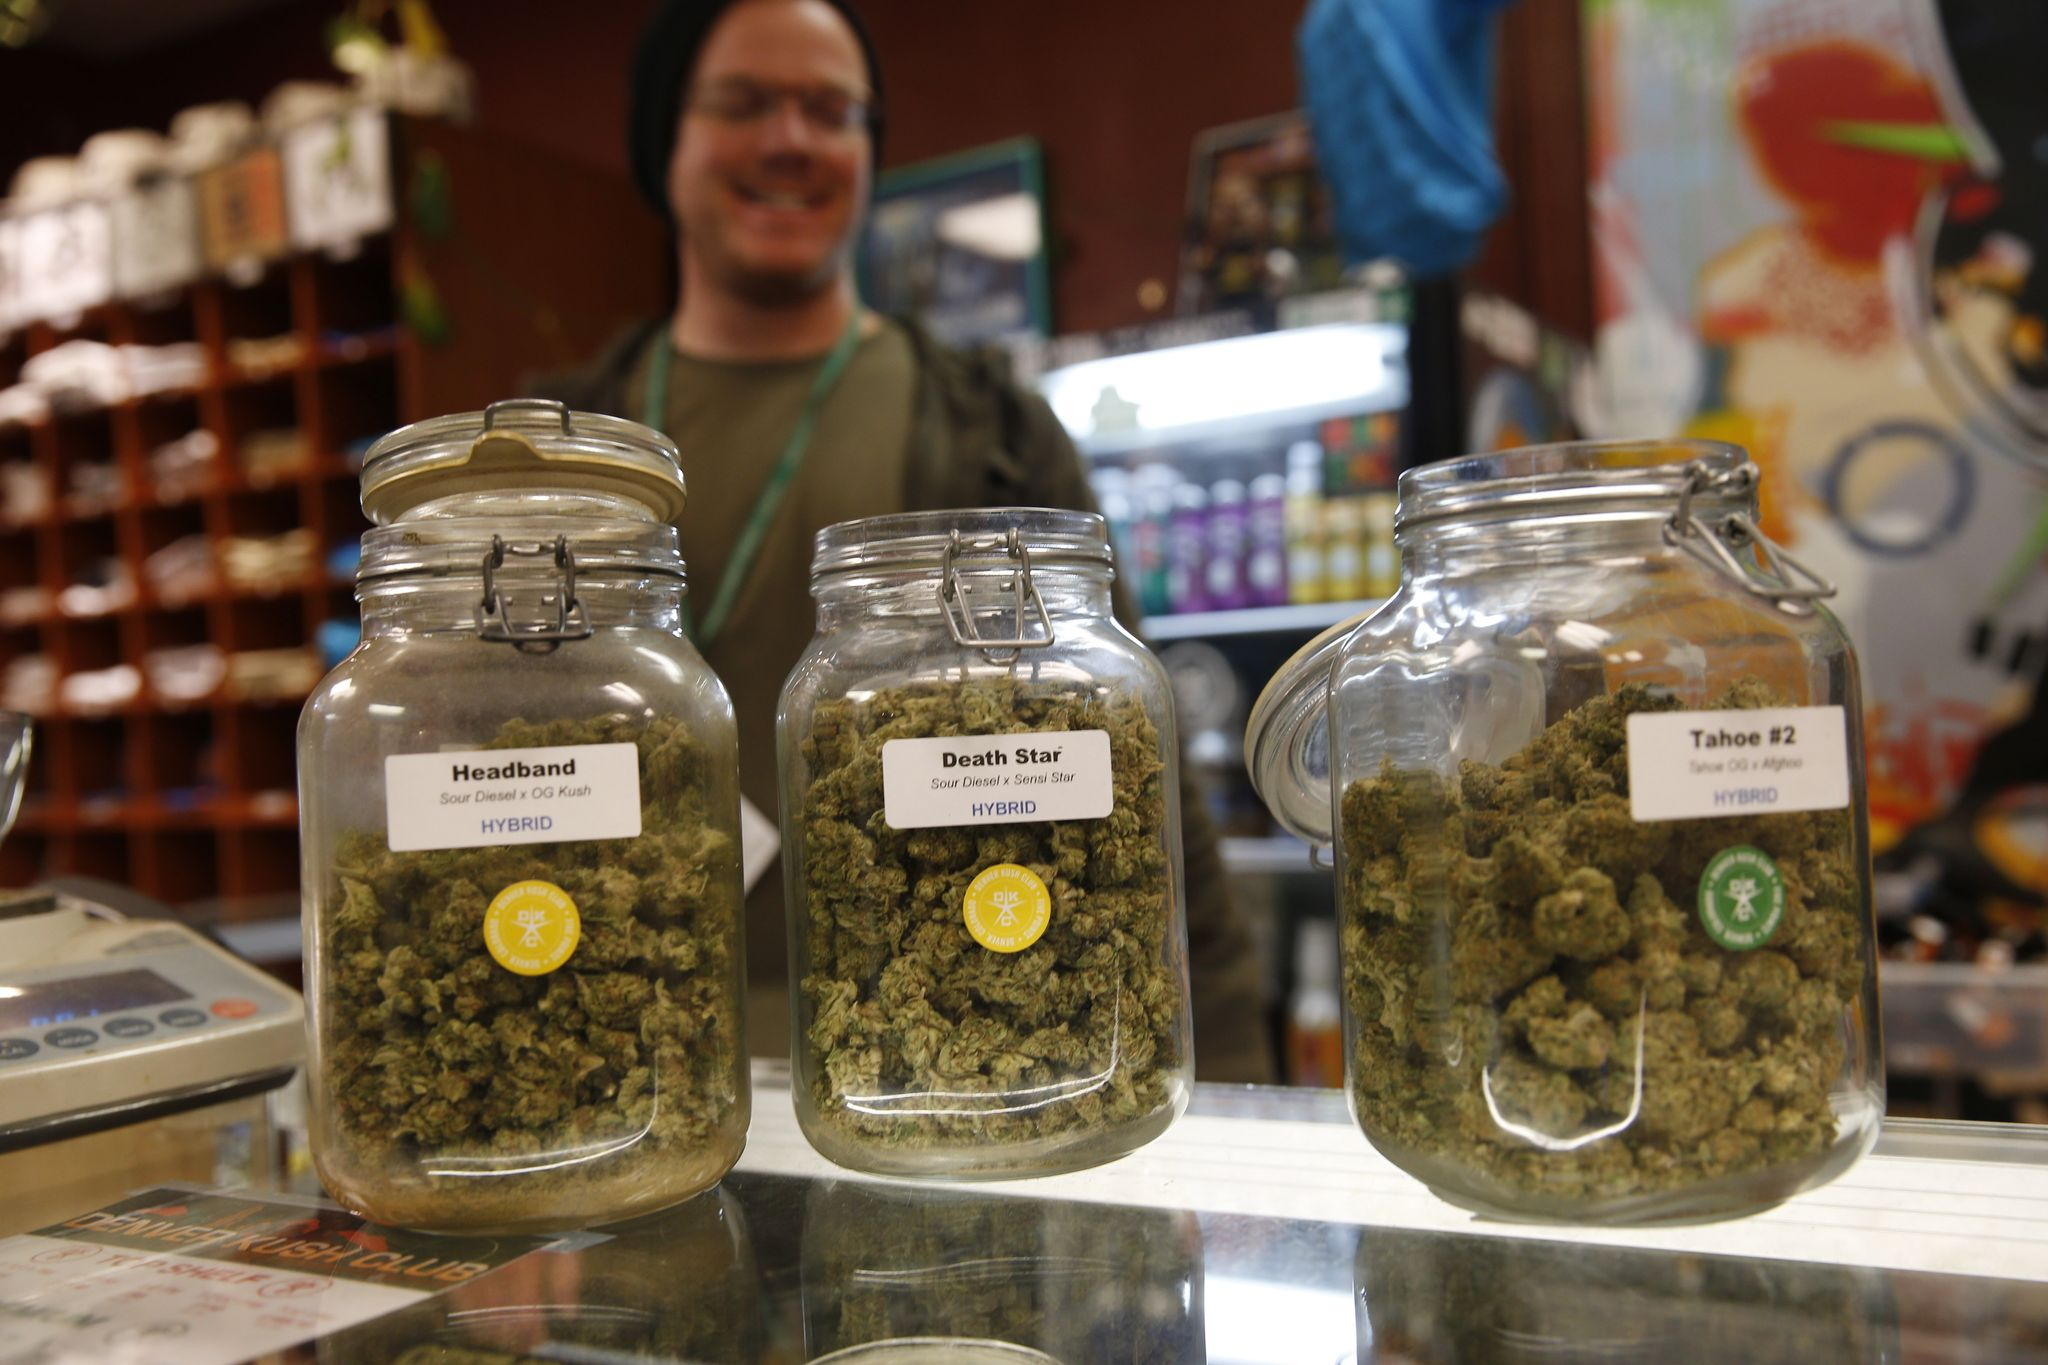 Colorado marijuana shops shattered record, sold $7.3M worth of pot on 4/20: report